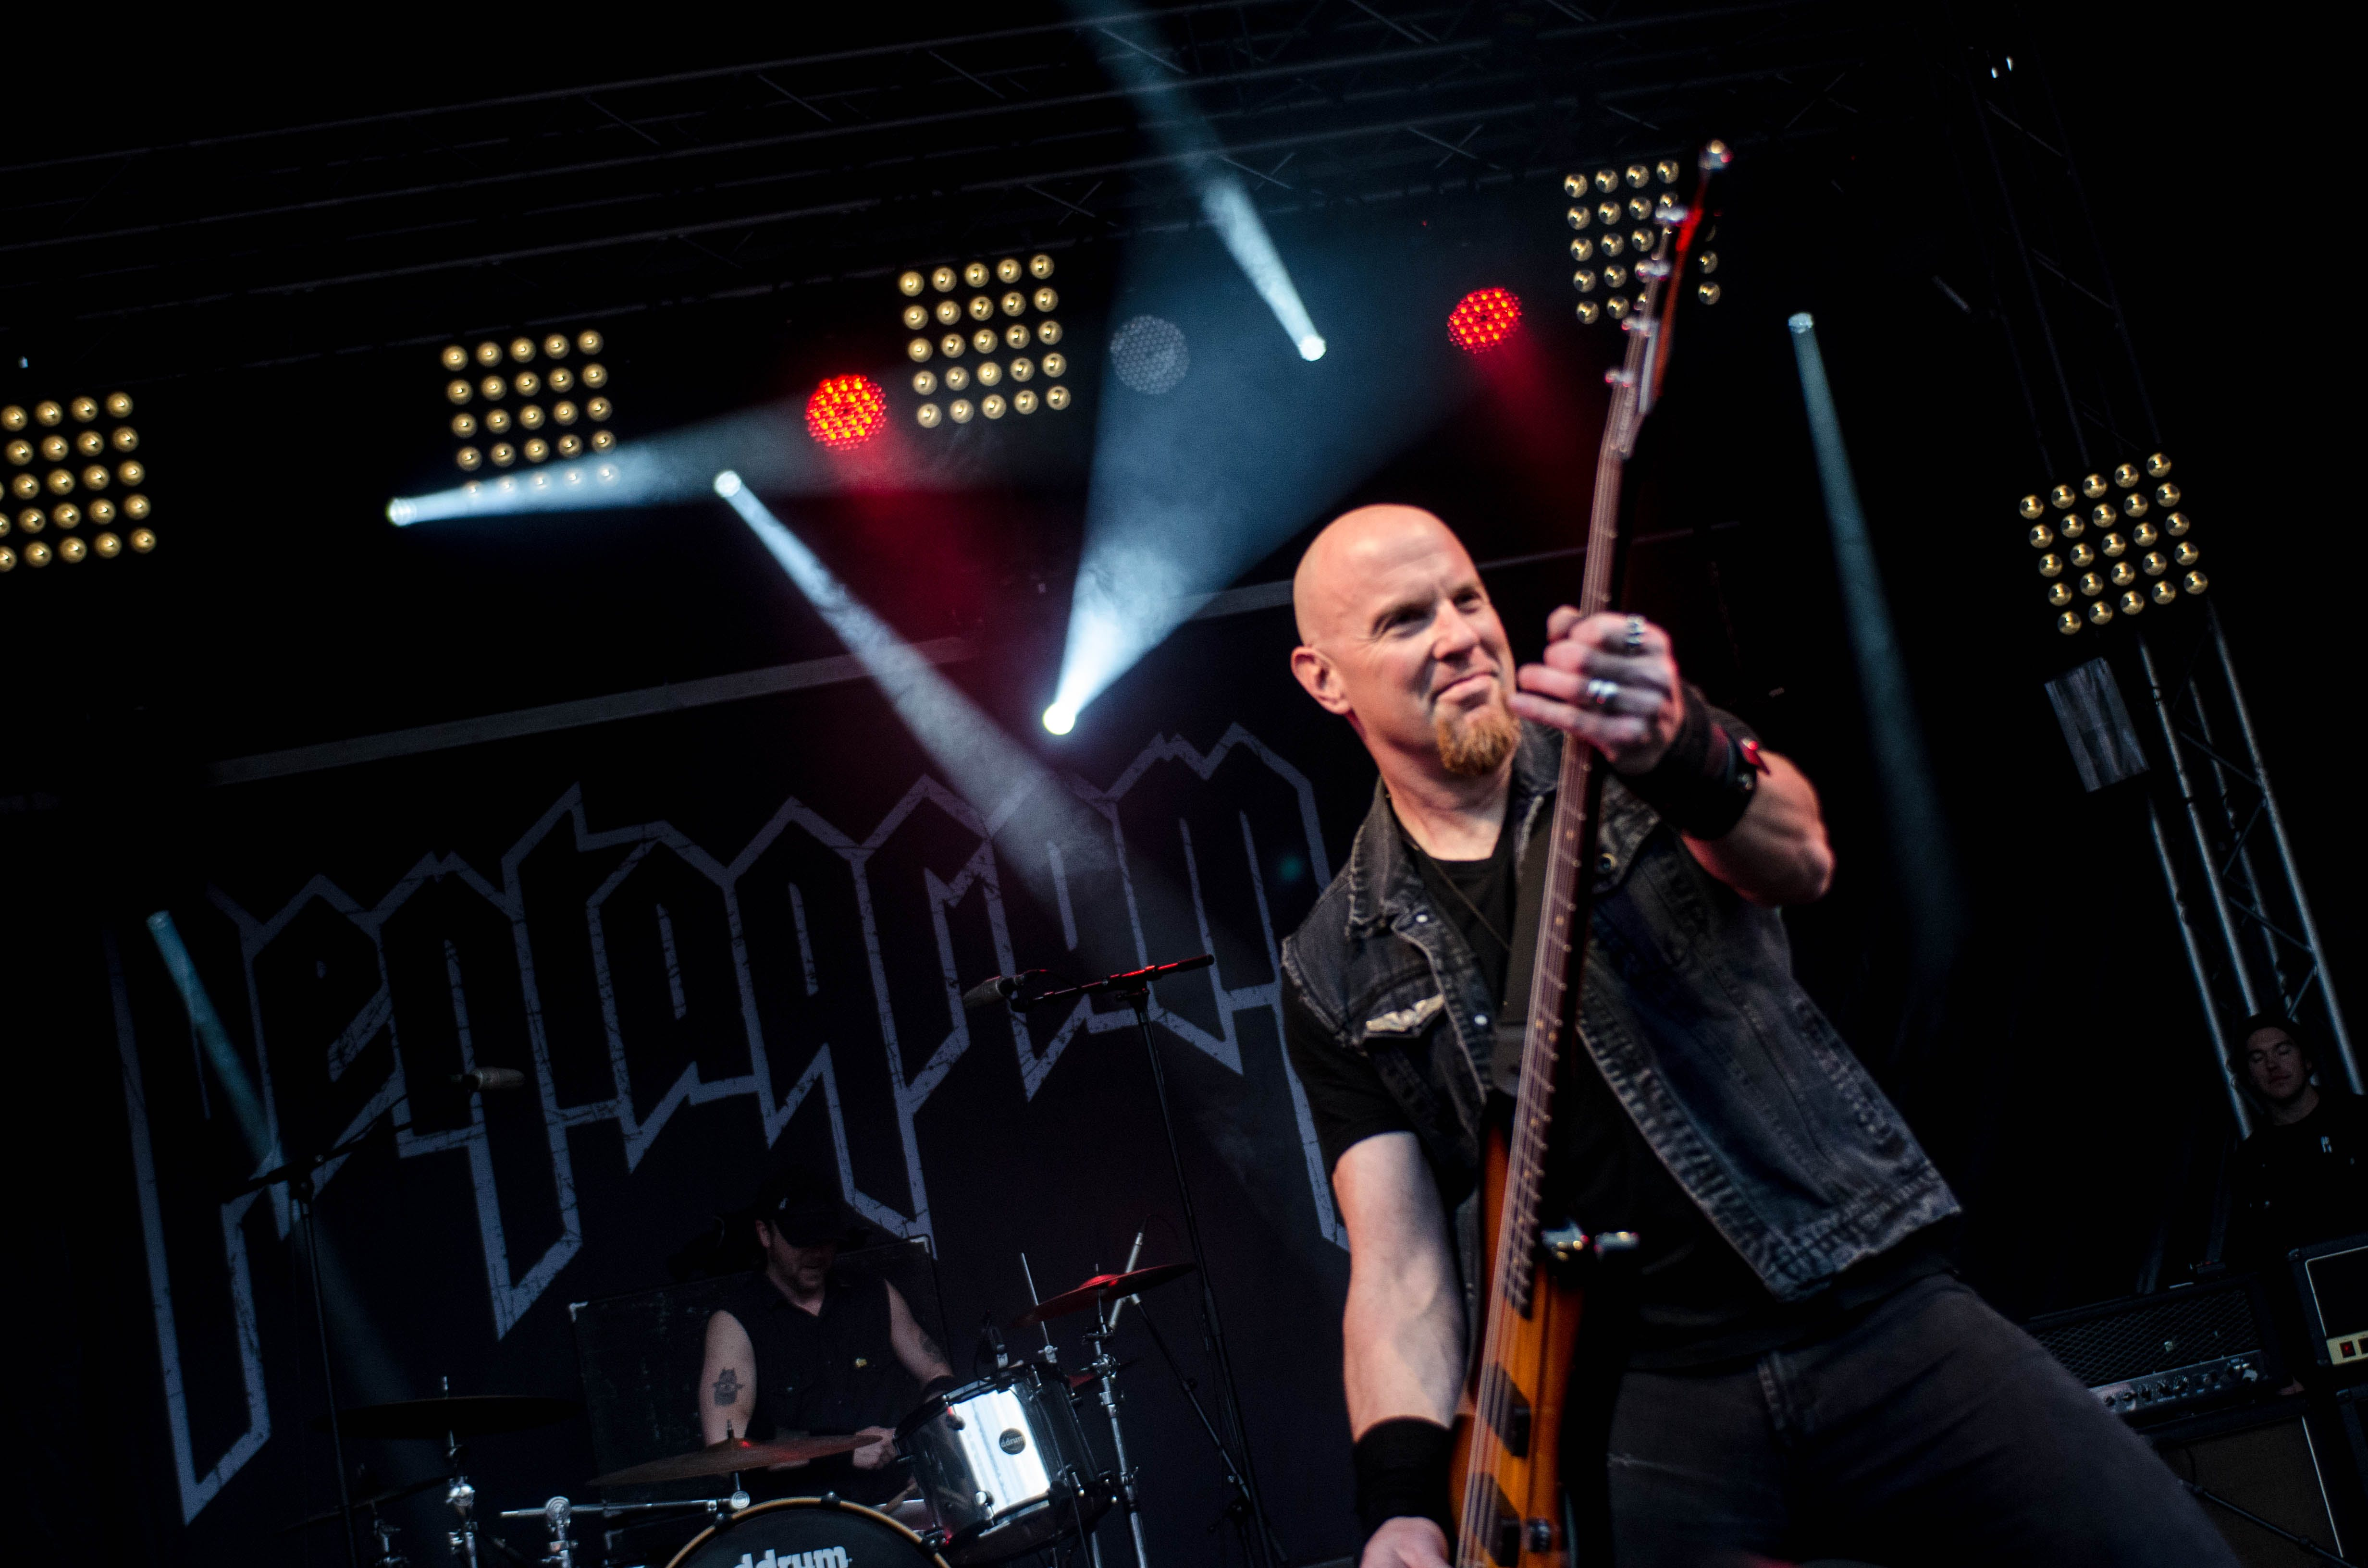 Free stock photo of Pentagram - Durbuy Rock Festival 2016